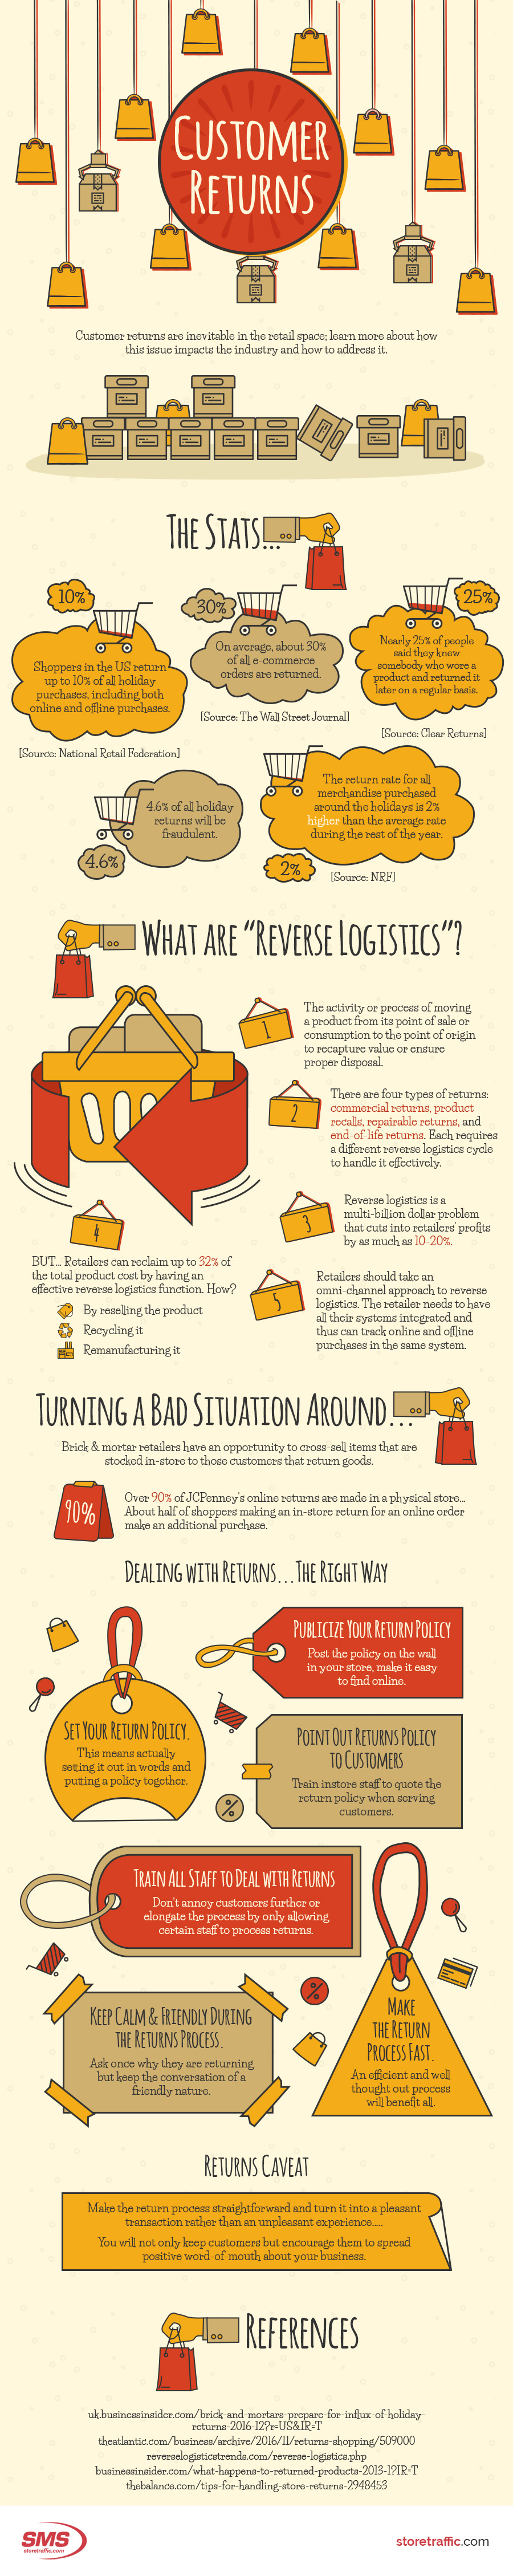 How to Handle Customer Returns - Infographic